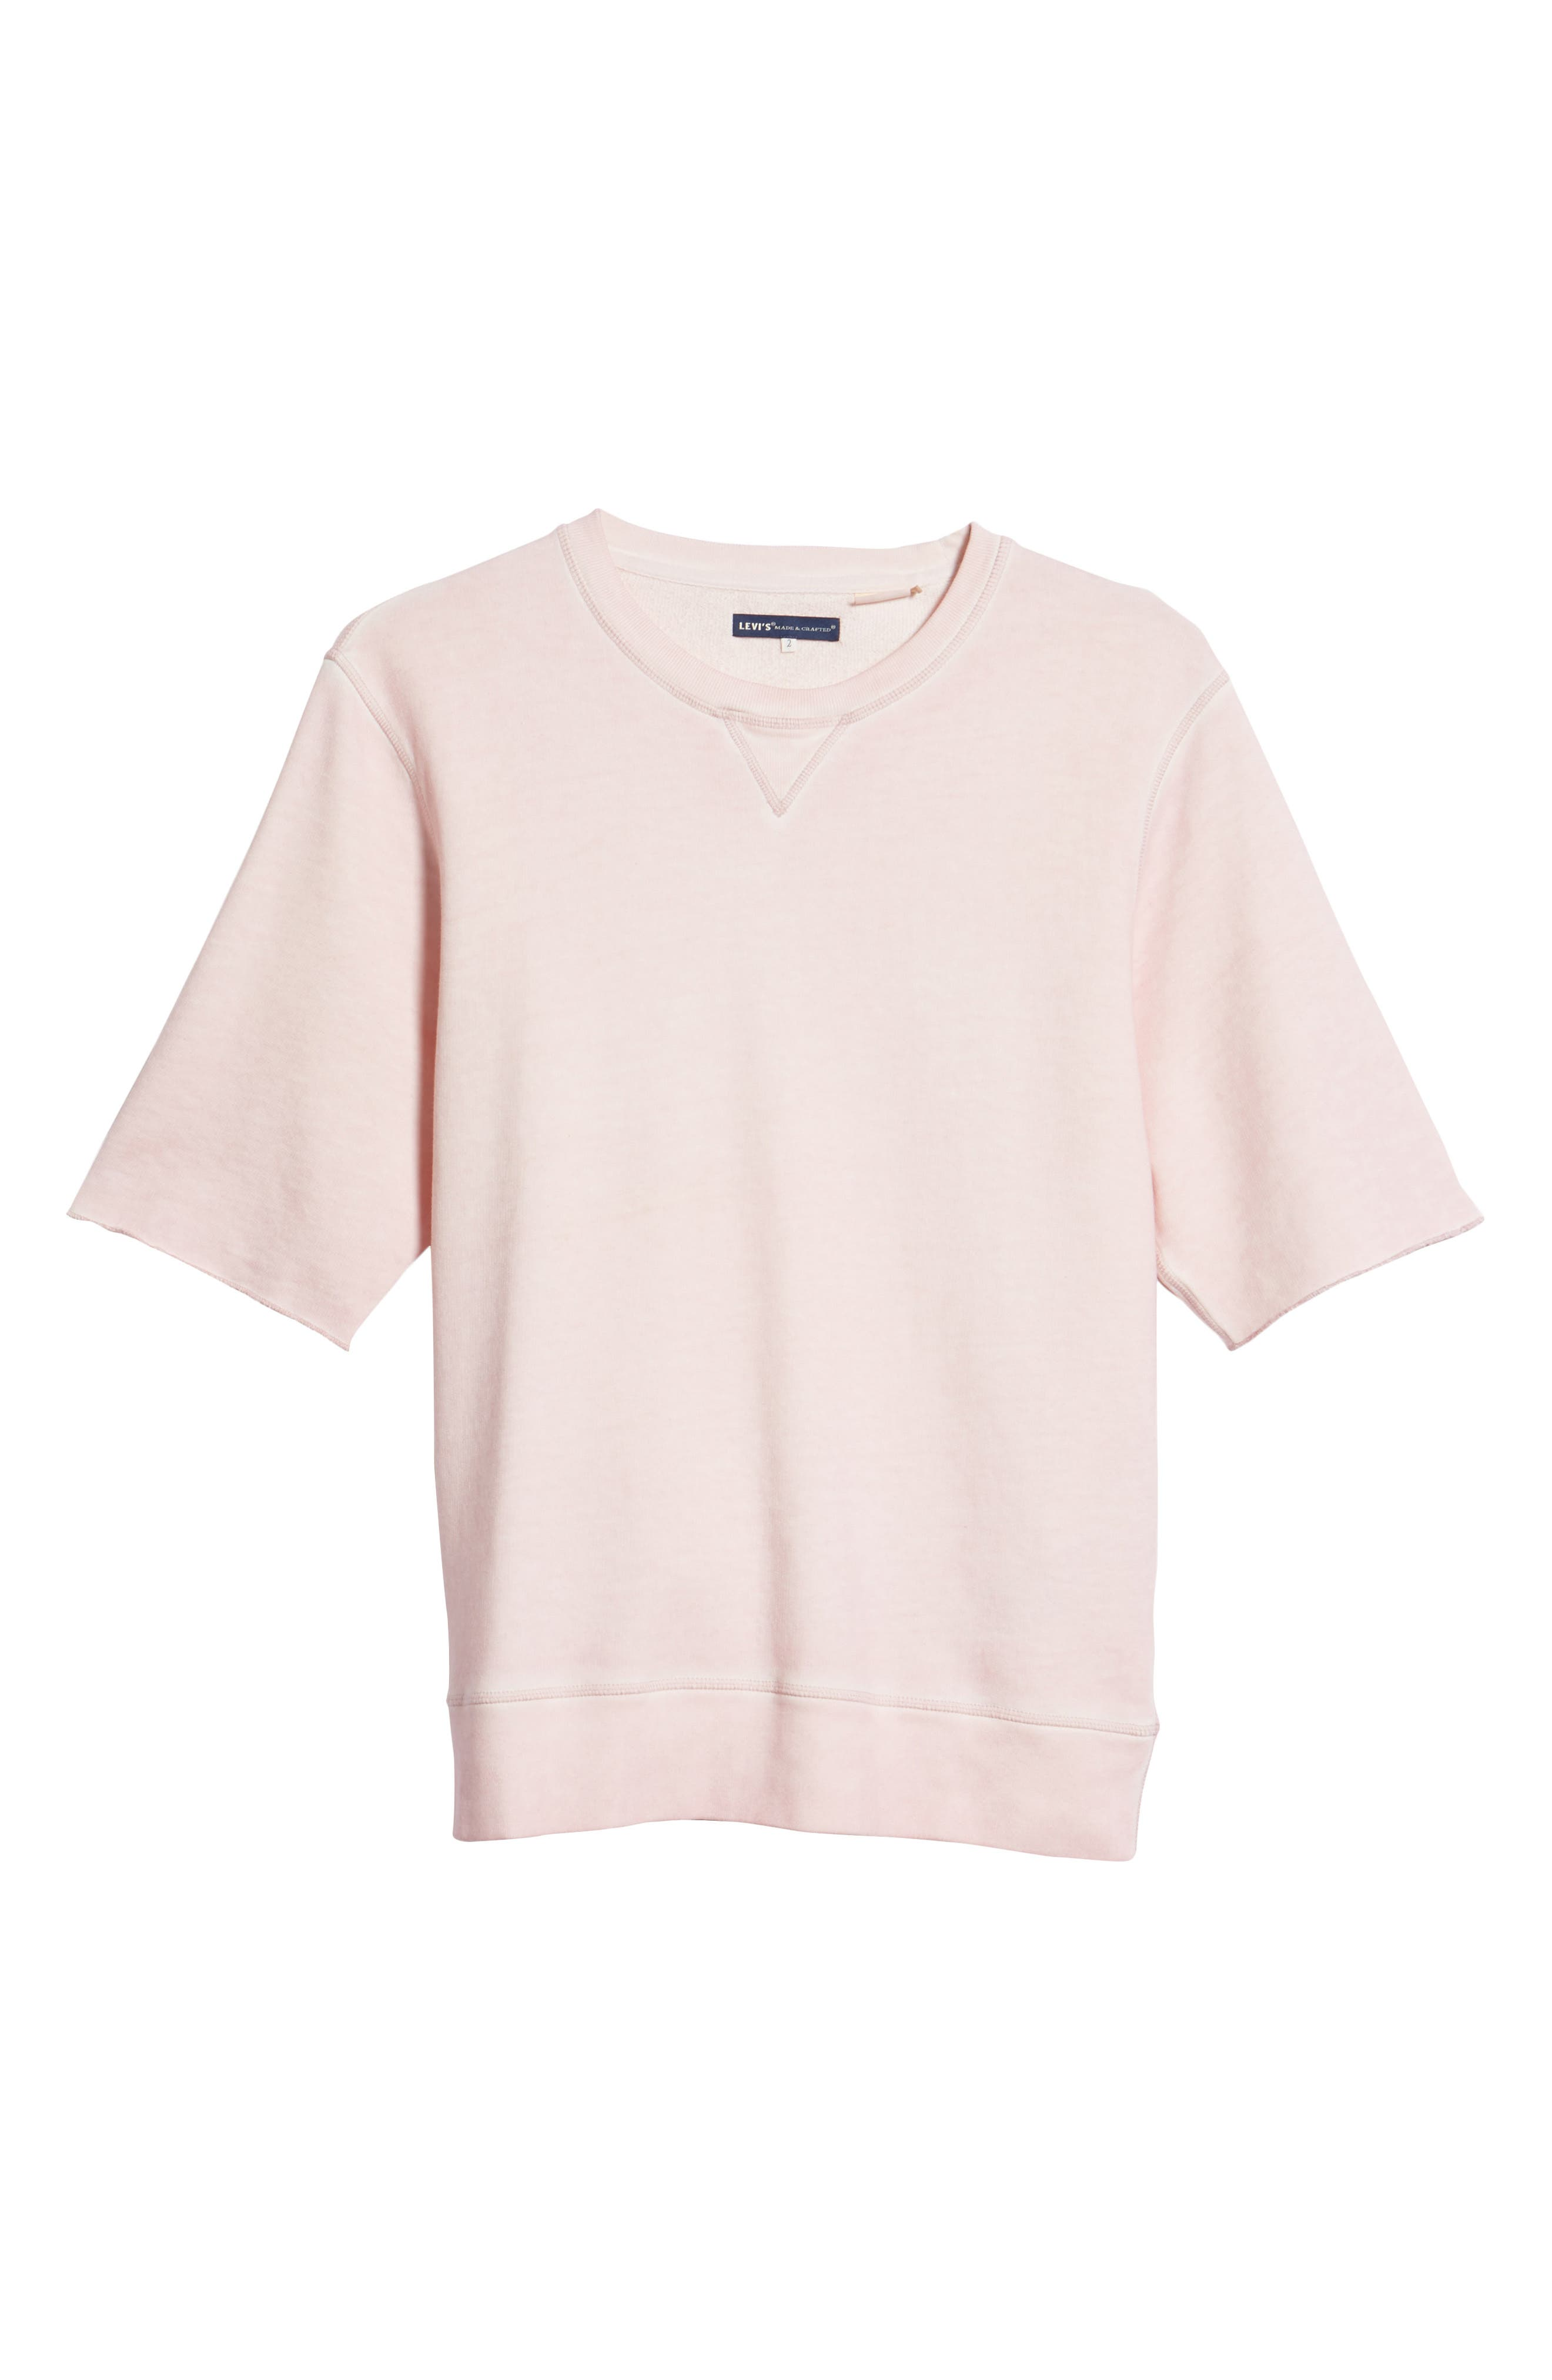 Levis'<sup>®</sup> Made & Crafted<sup>™</sup> Standard Fit T-Shirt,                             Alternate thumbnail 6, color,                             500